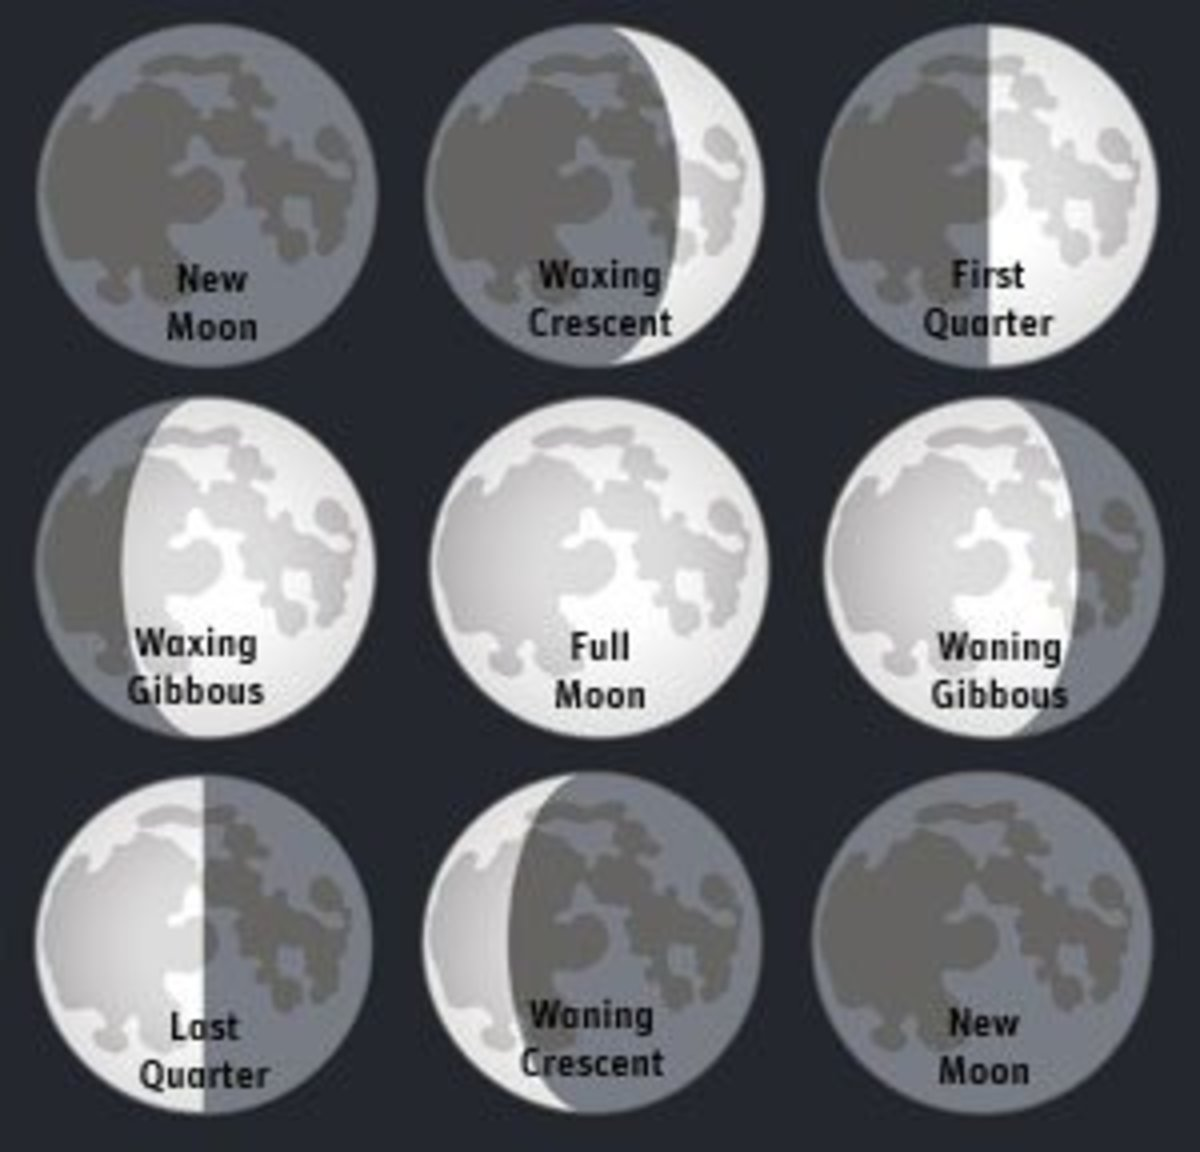 Phases Of The Moon For Kids The phases of the moon